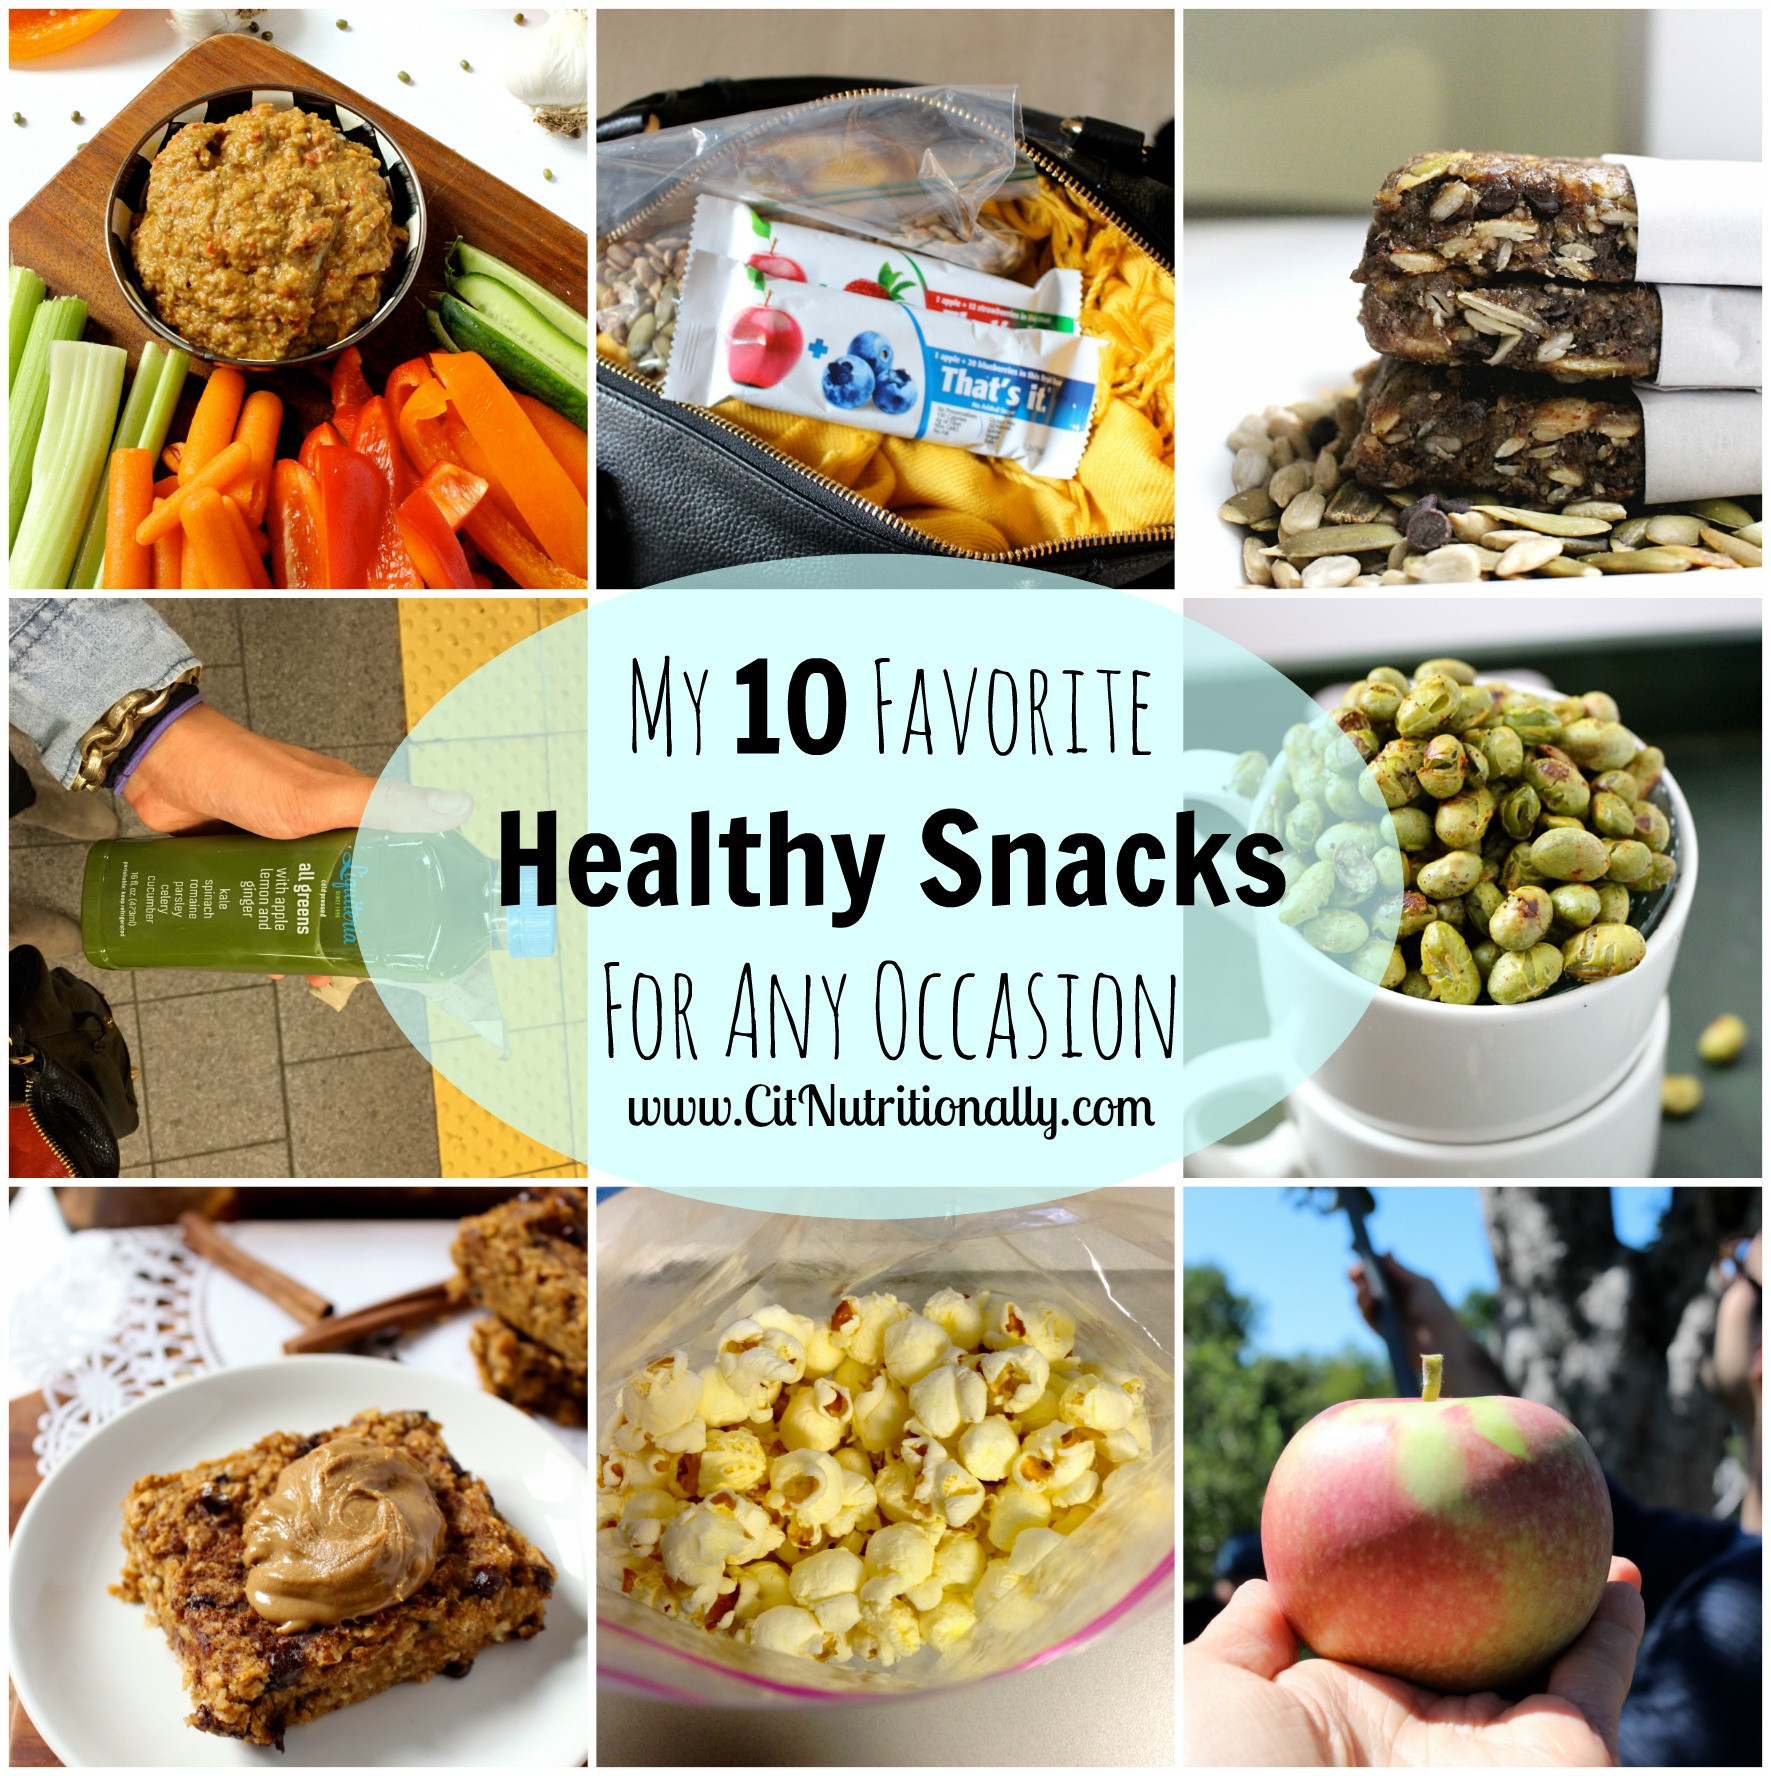 Healthy Carb Snacks  My 10 Favorite Healthy Snacks For Any Occasion…New Years